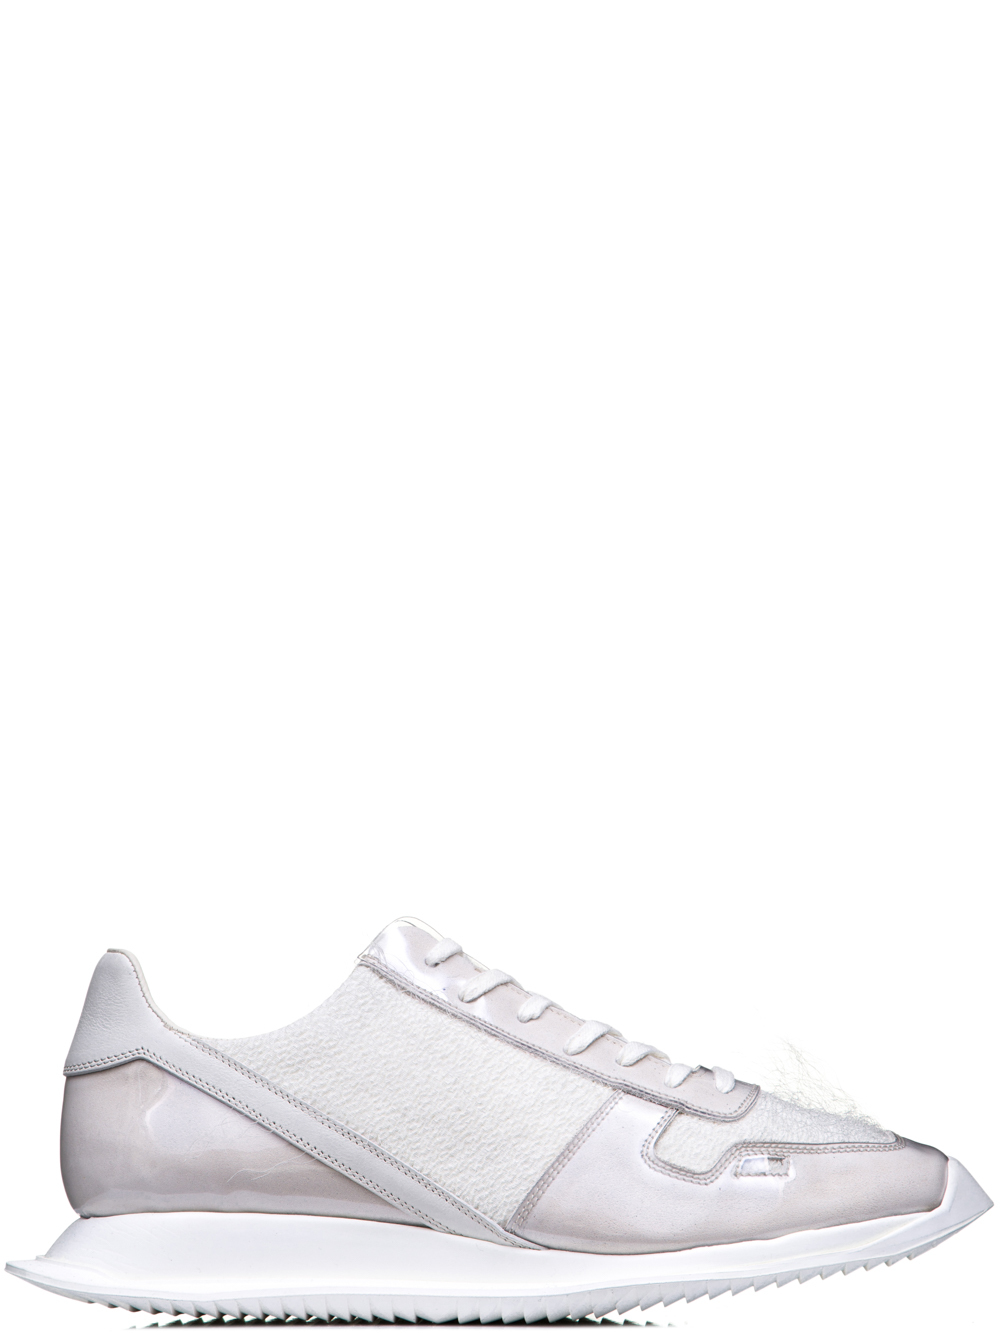 RICK OWENS OFF-THE-RUNWAY LACE UP RUNNERS IN MILK WHITE